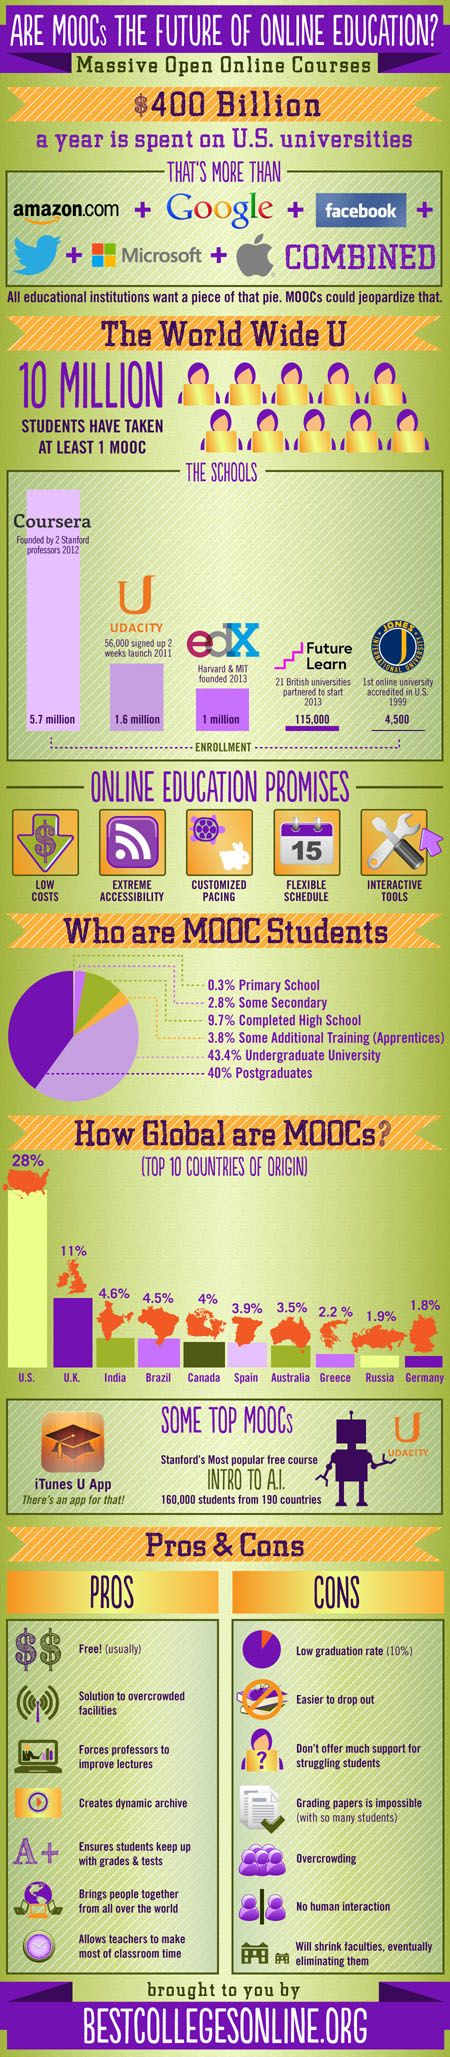 Are MOOCs the future of online education?: Elearn Infographic, Learning Technology, Online Learning, Education Infographic, Higher Education, Future Learning, Online Education, Futurelearn Mooc, High Schools